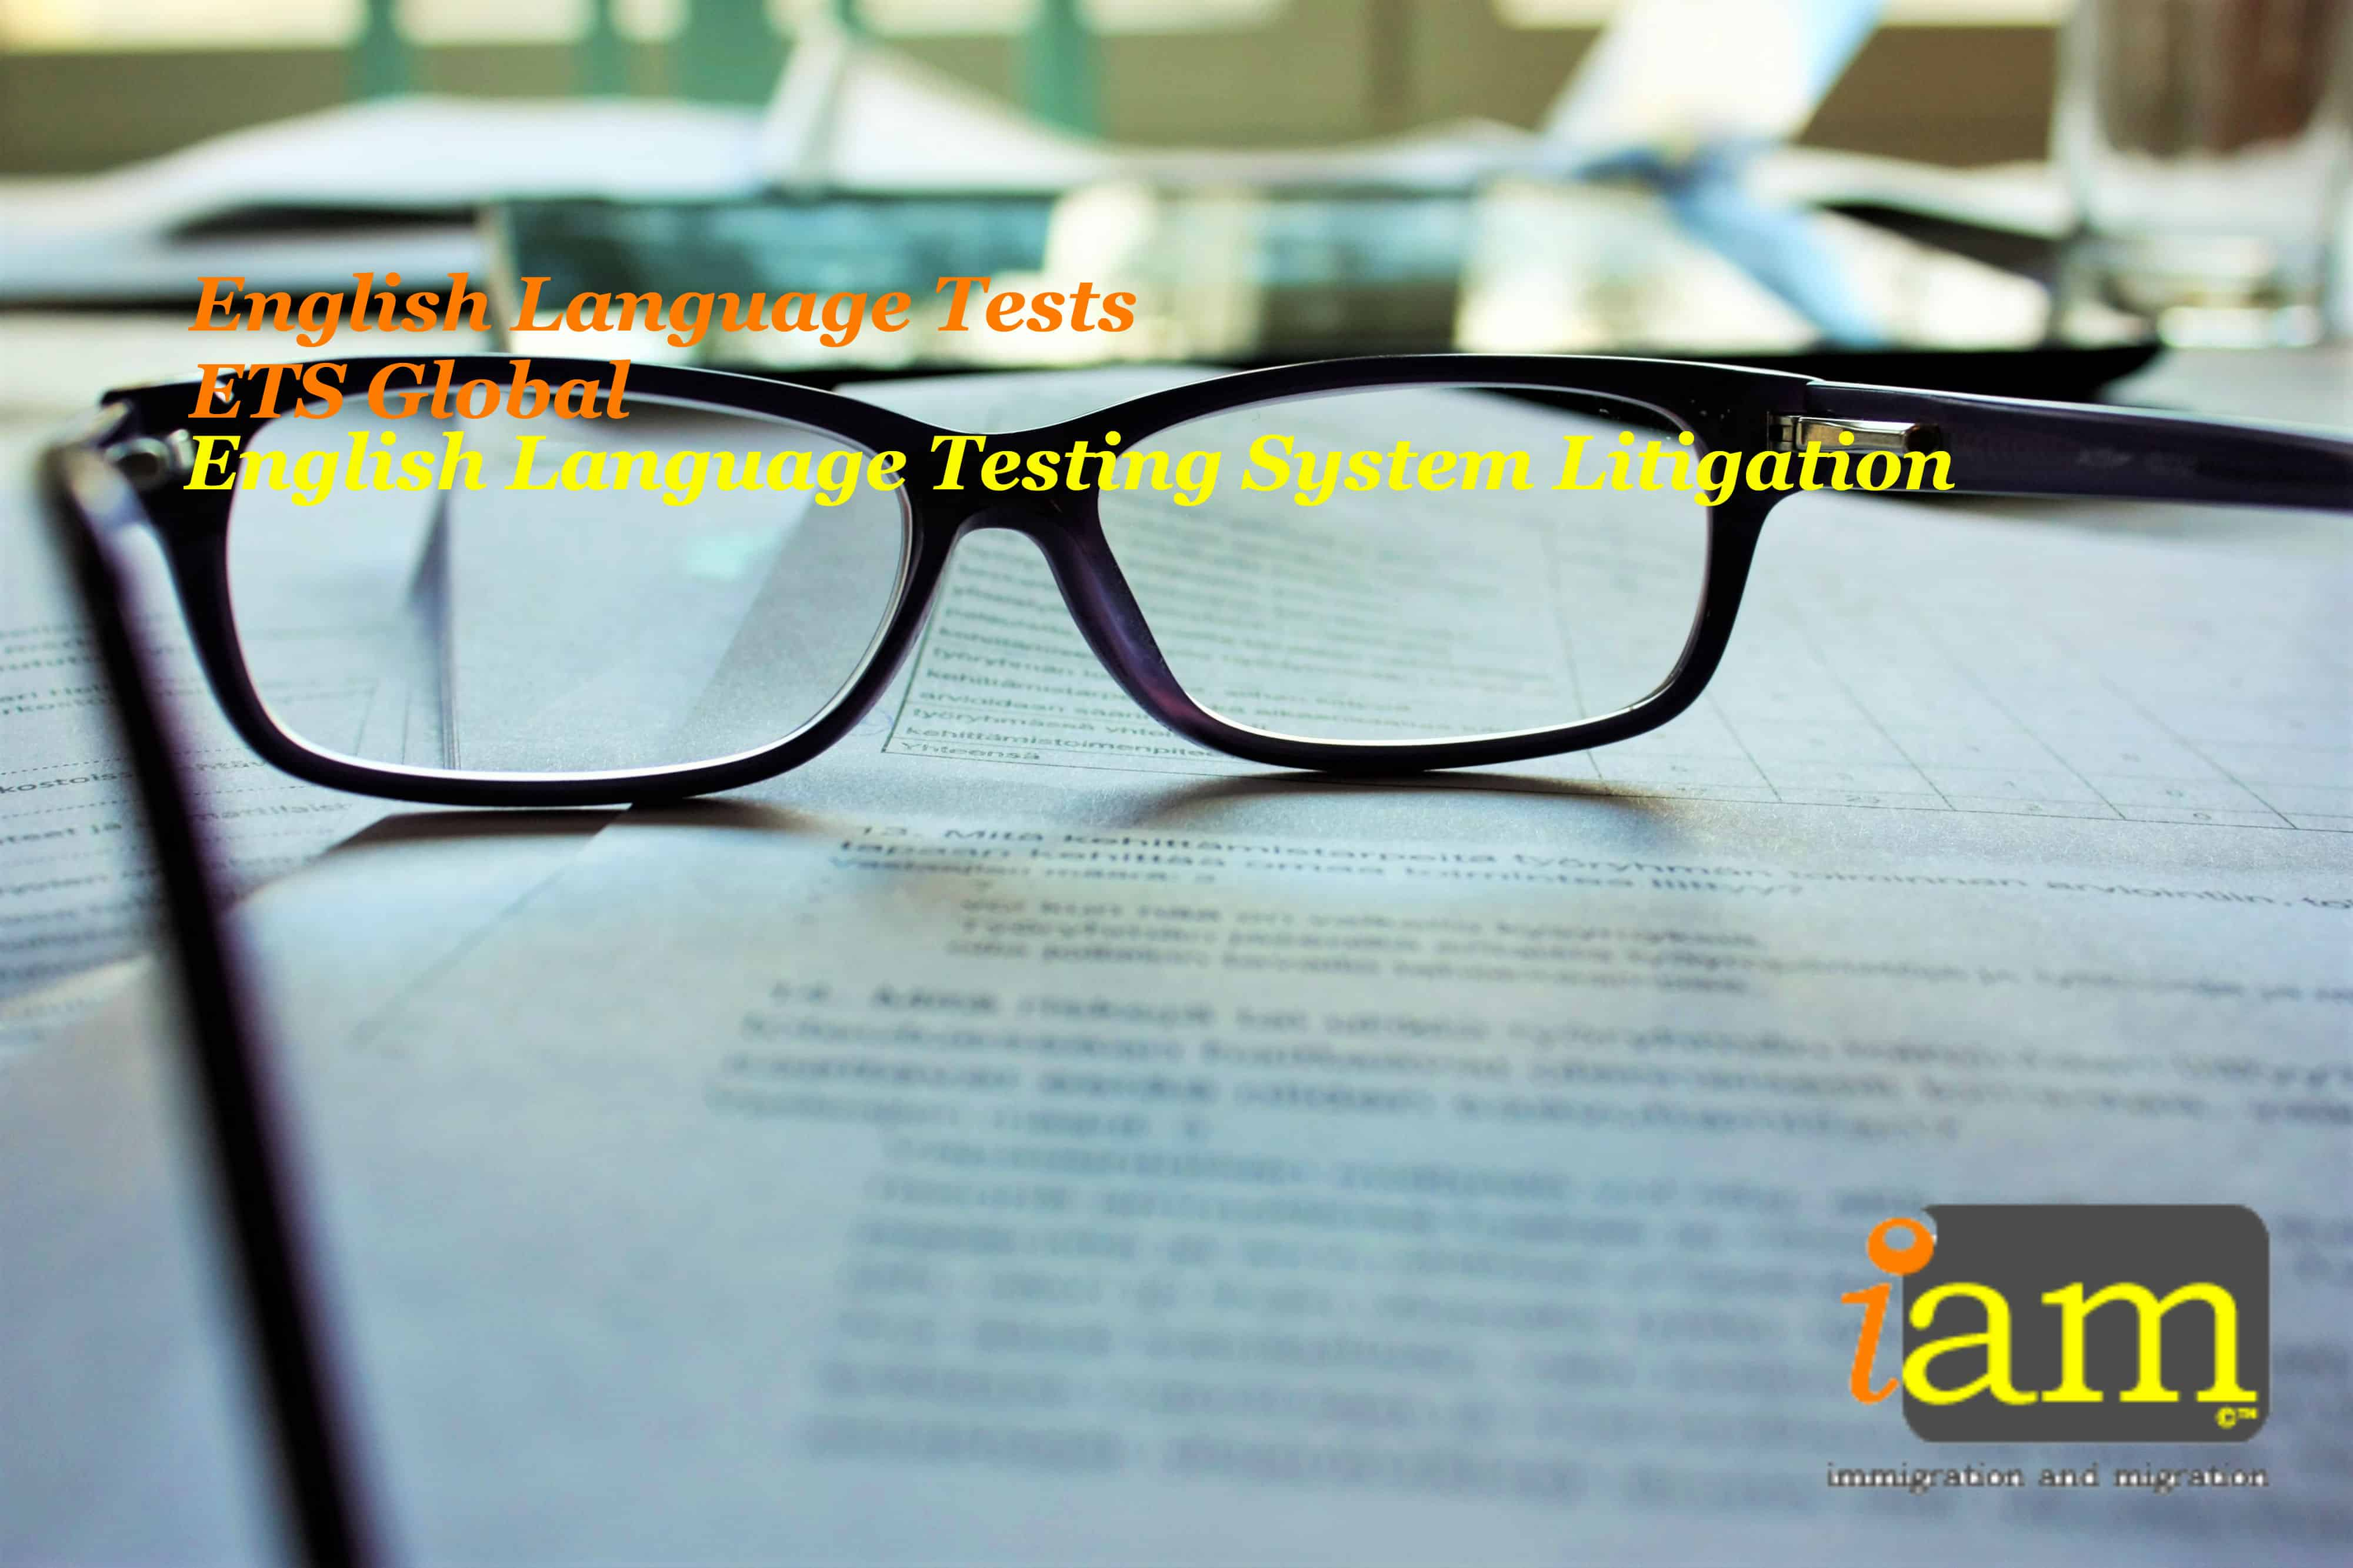 English Language Test - english language testing system - ETS